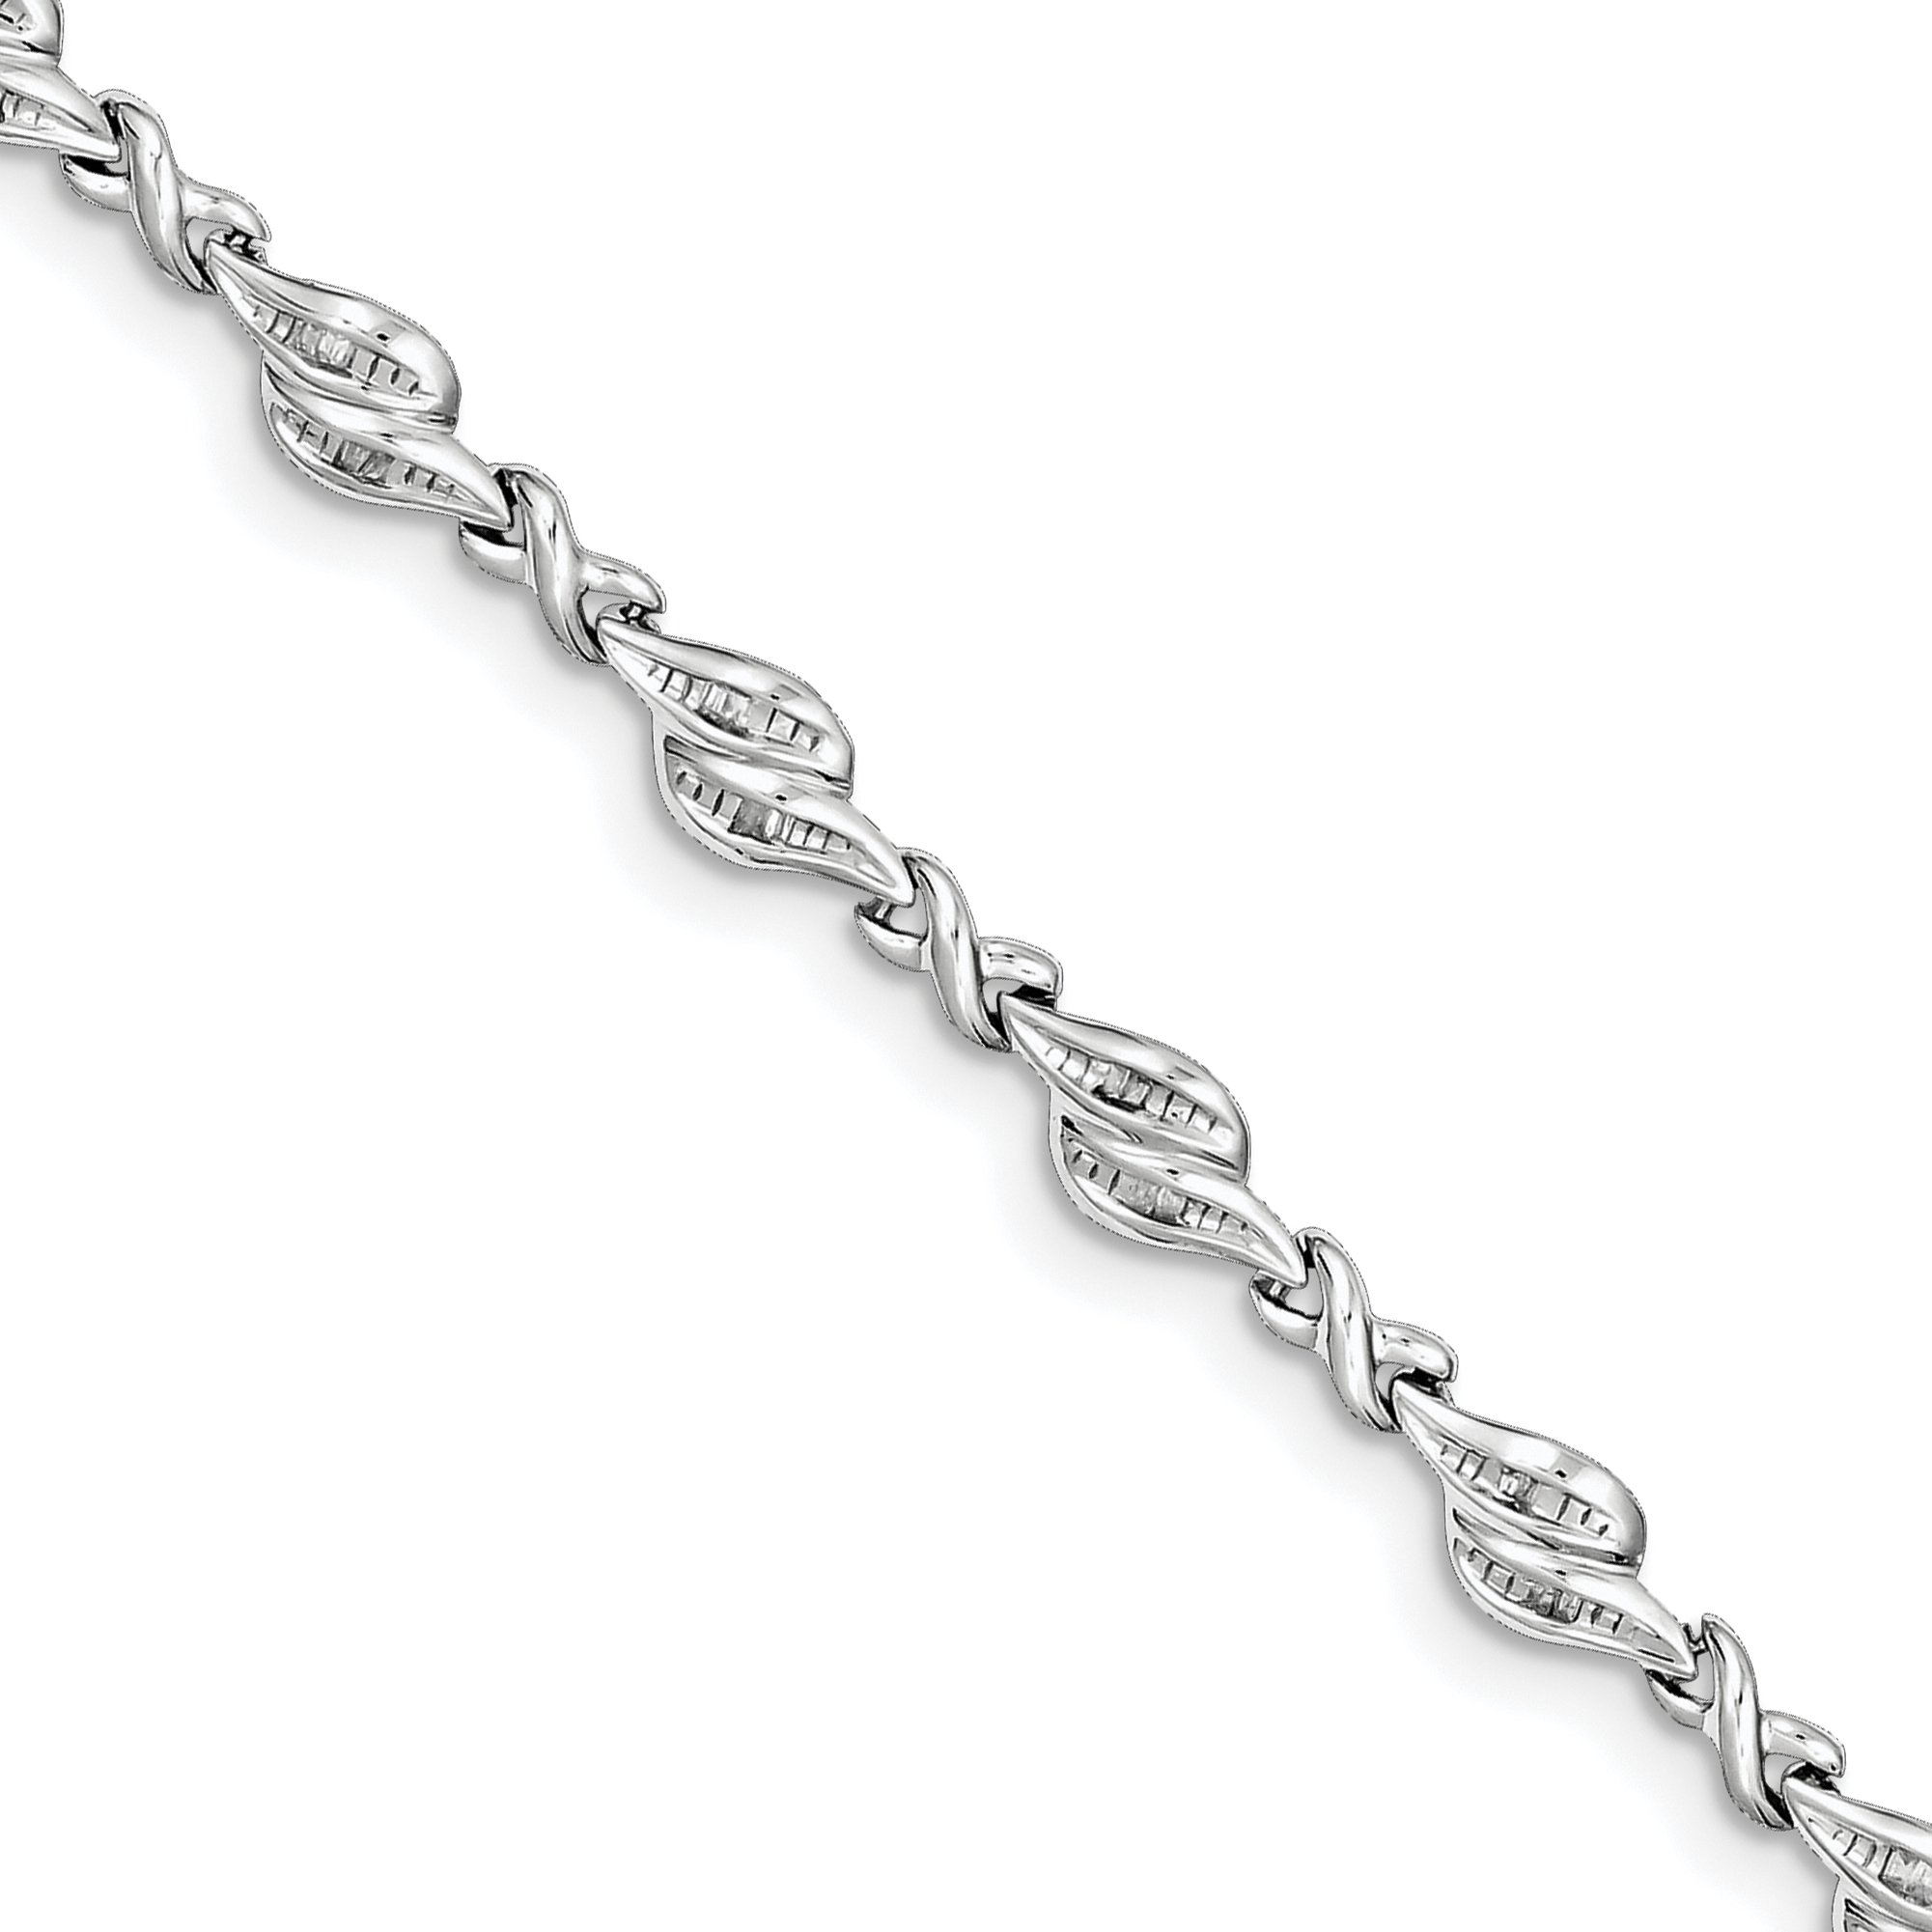 ICE CARATS 925 Sterling Silver Diamond Bracelet 7 Inch Fine Jewelry Gift Set For Women Heart